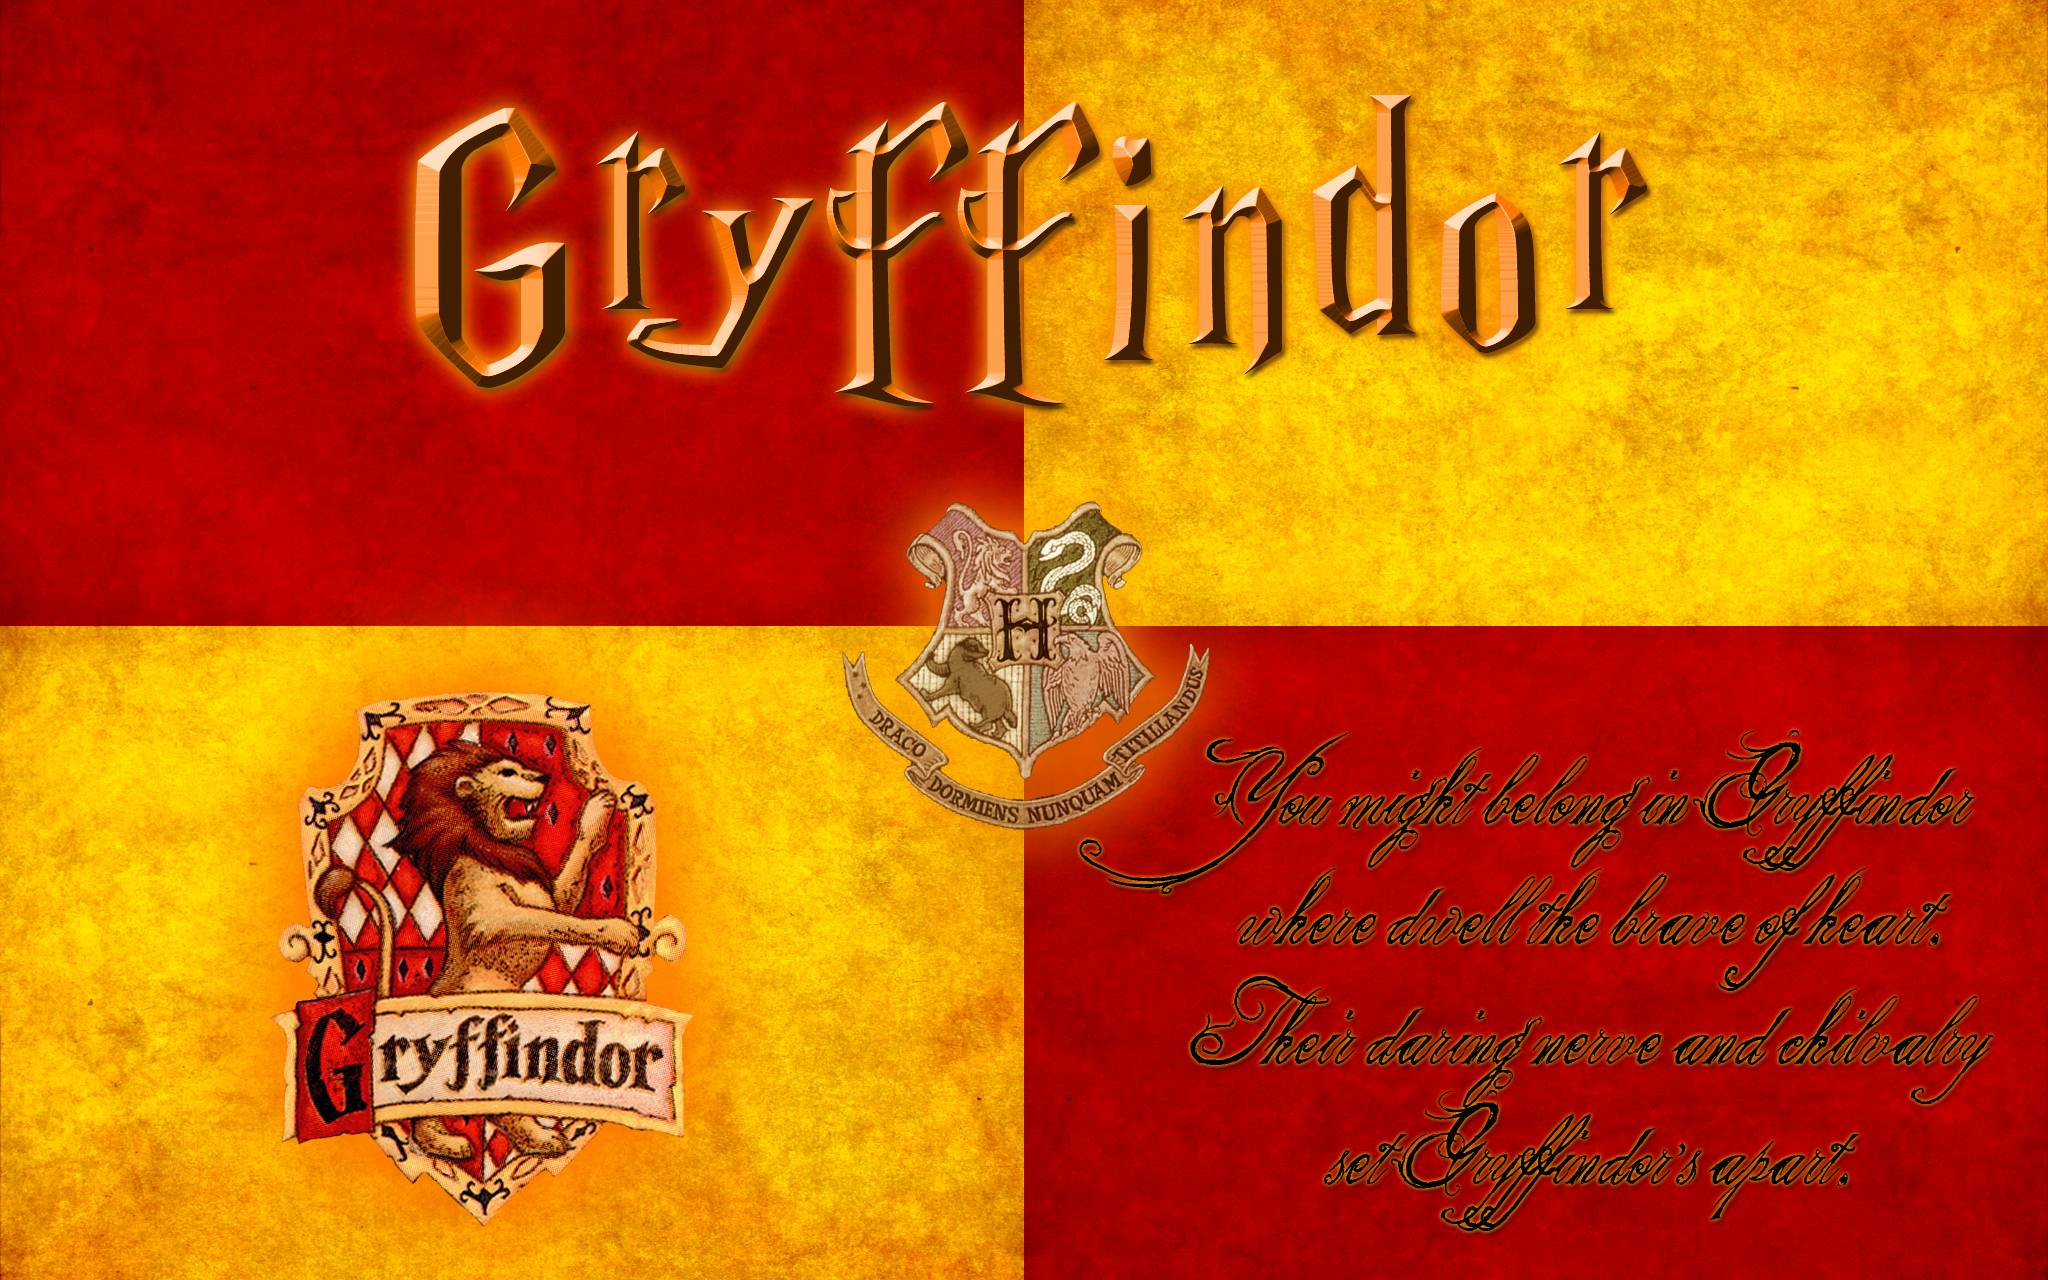 2048x1280 Gryffindor Wallpapers